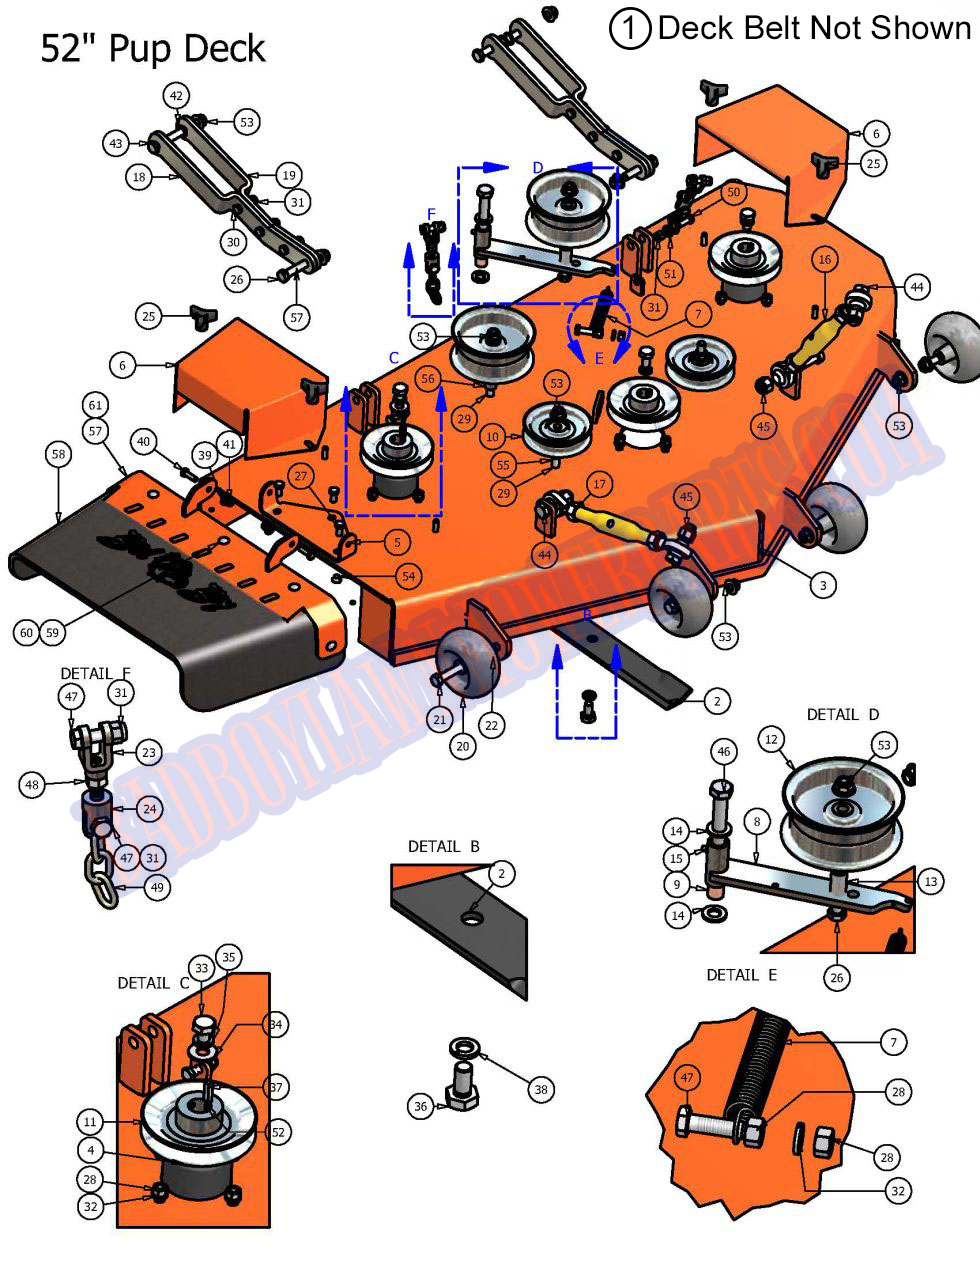 07pup52dk 2007 Pup 52 Deck Assembly Manual Guide